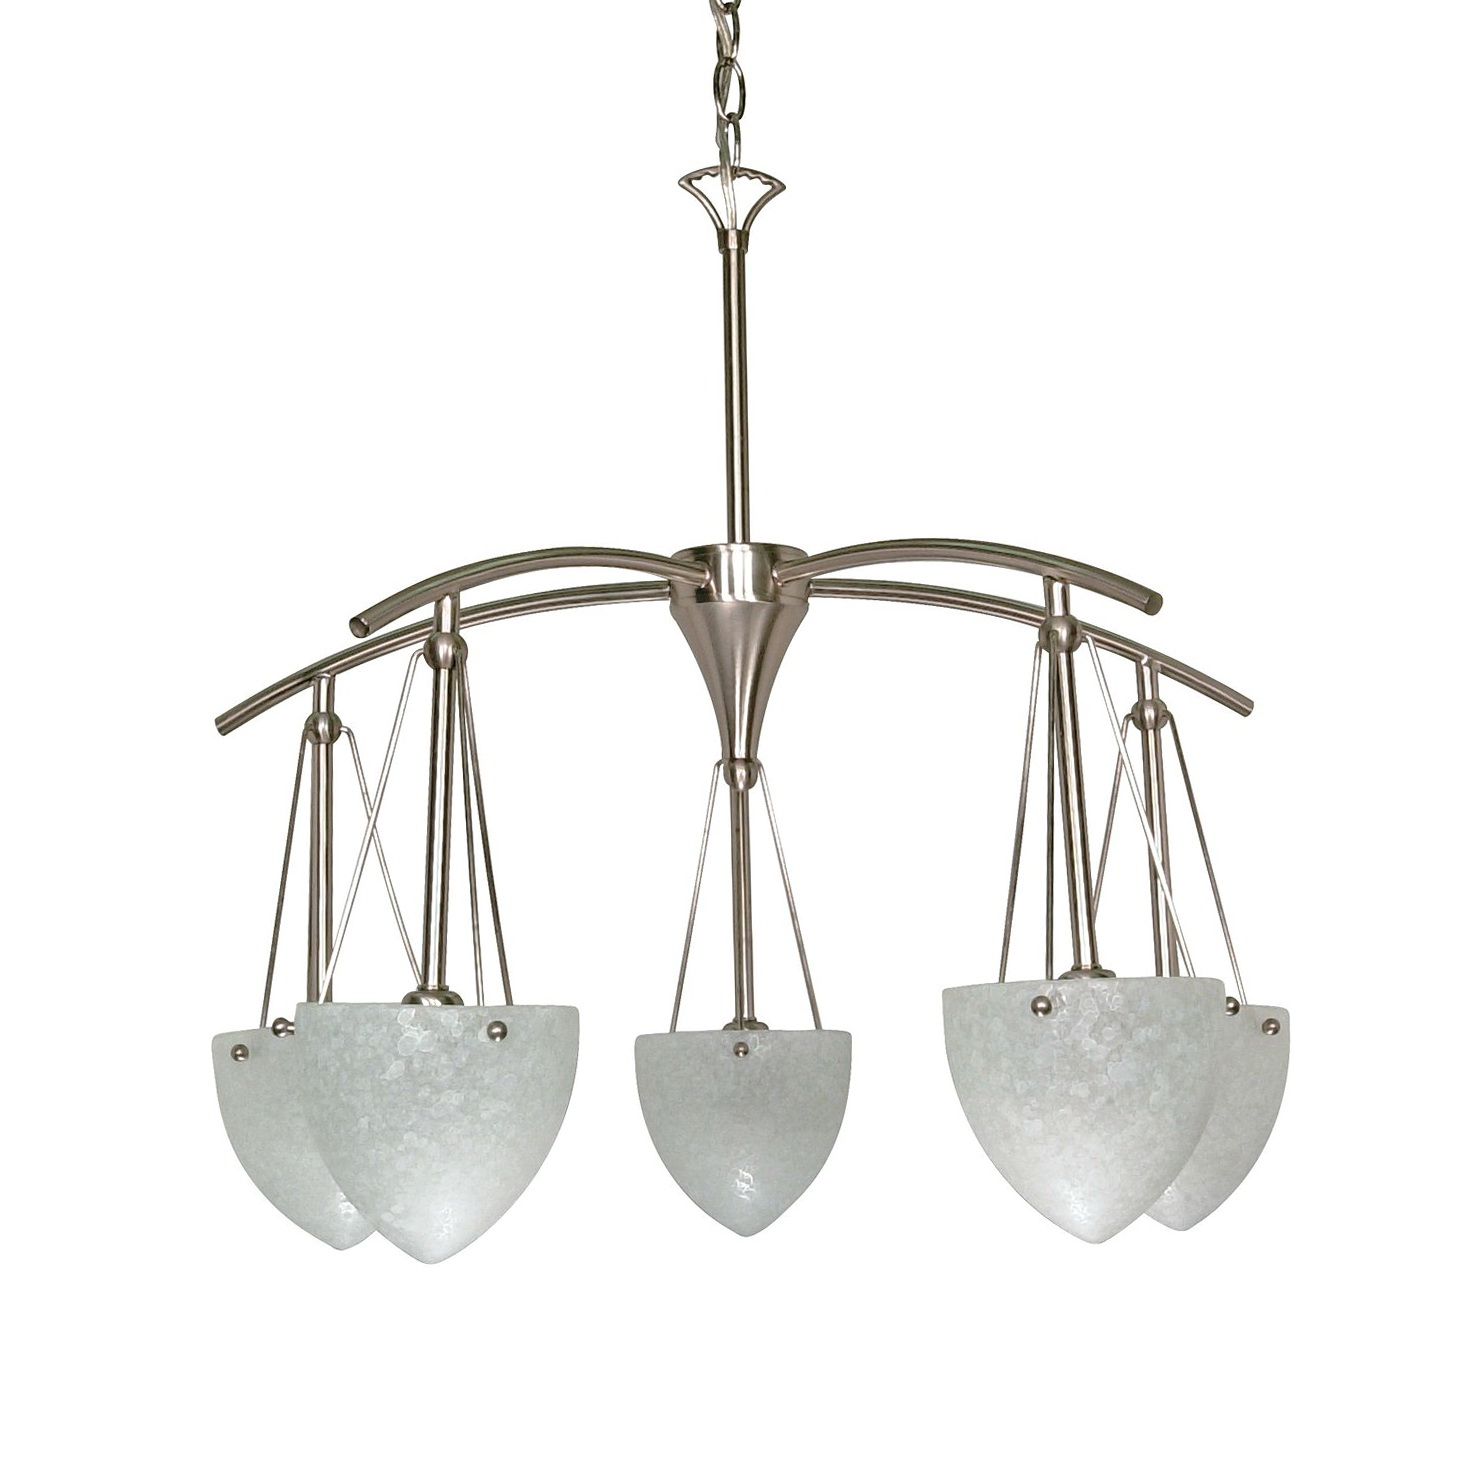 5 Light Chandelier Brushed Nickel